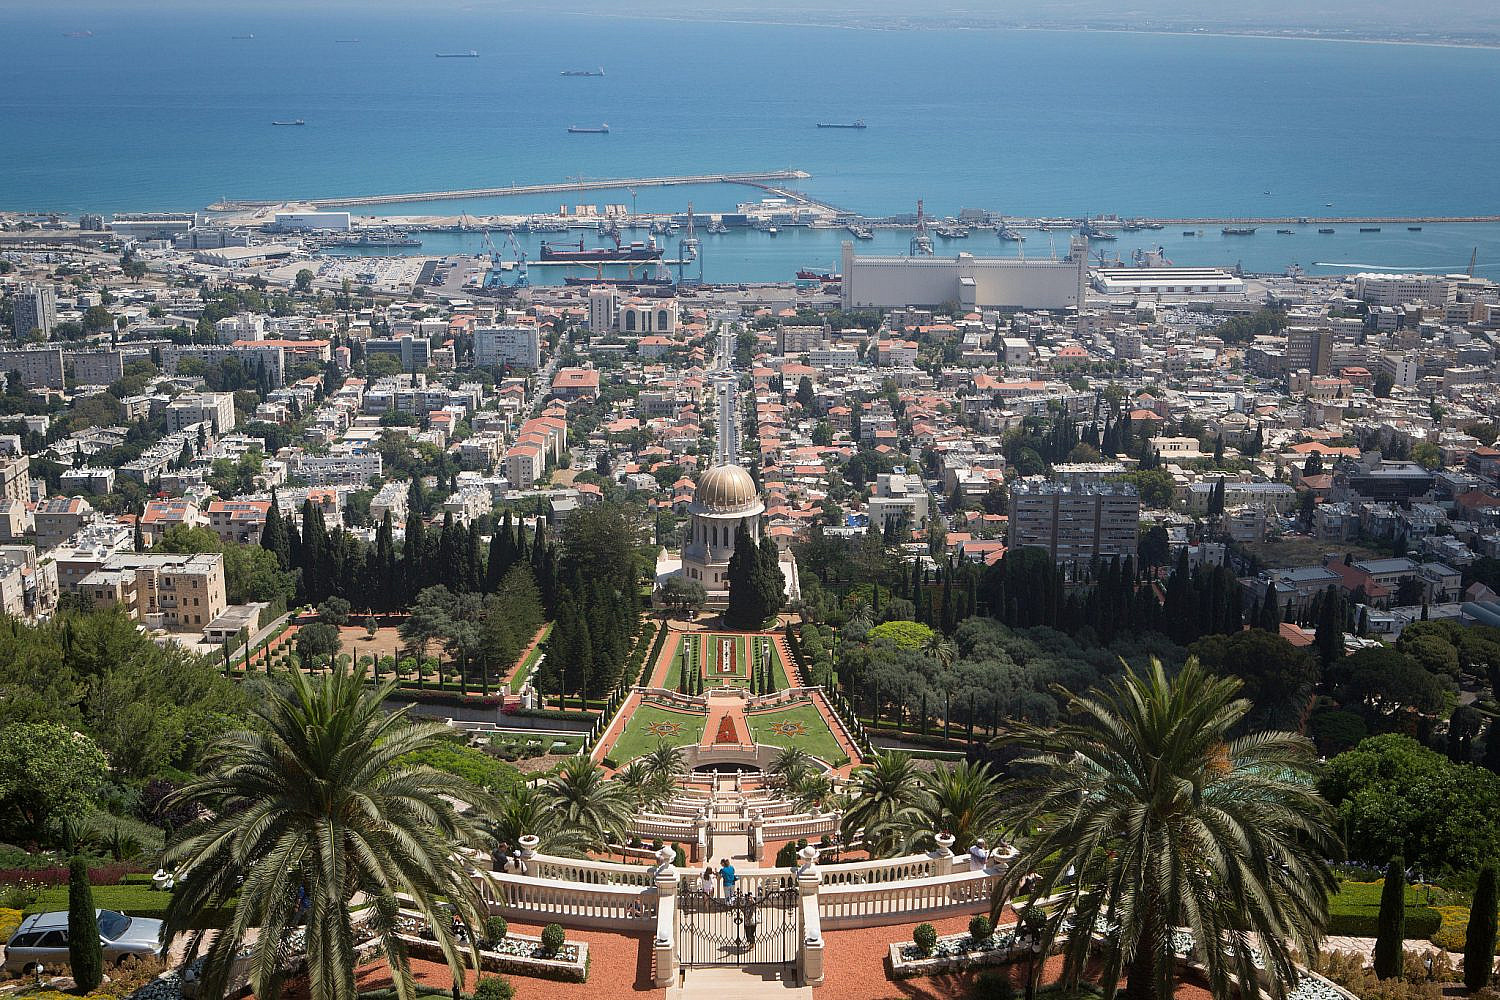 View of the Bahai gardens, located on Mount Carmel, in the northern Israeli city of Haifa. June 11, 2015. (Miriam Alster/Flash90)